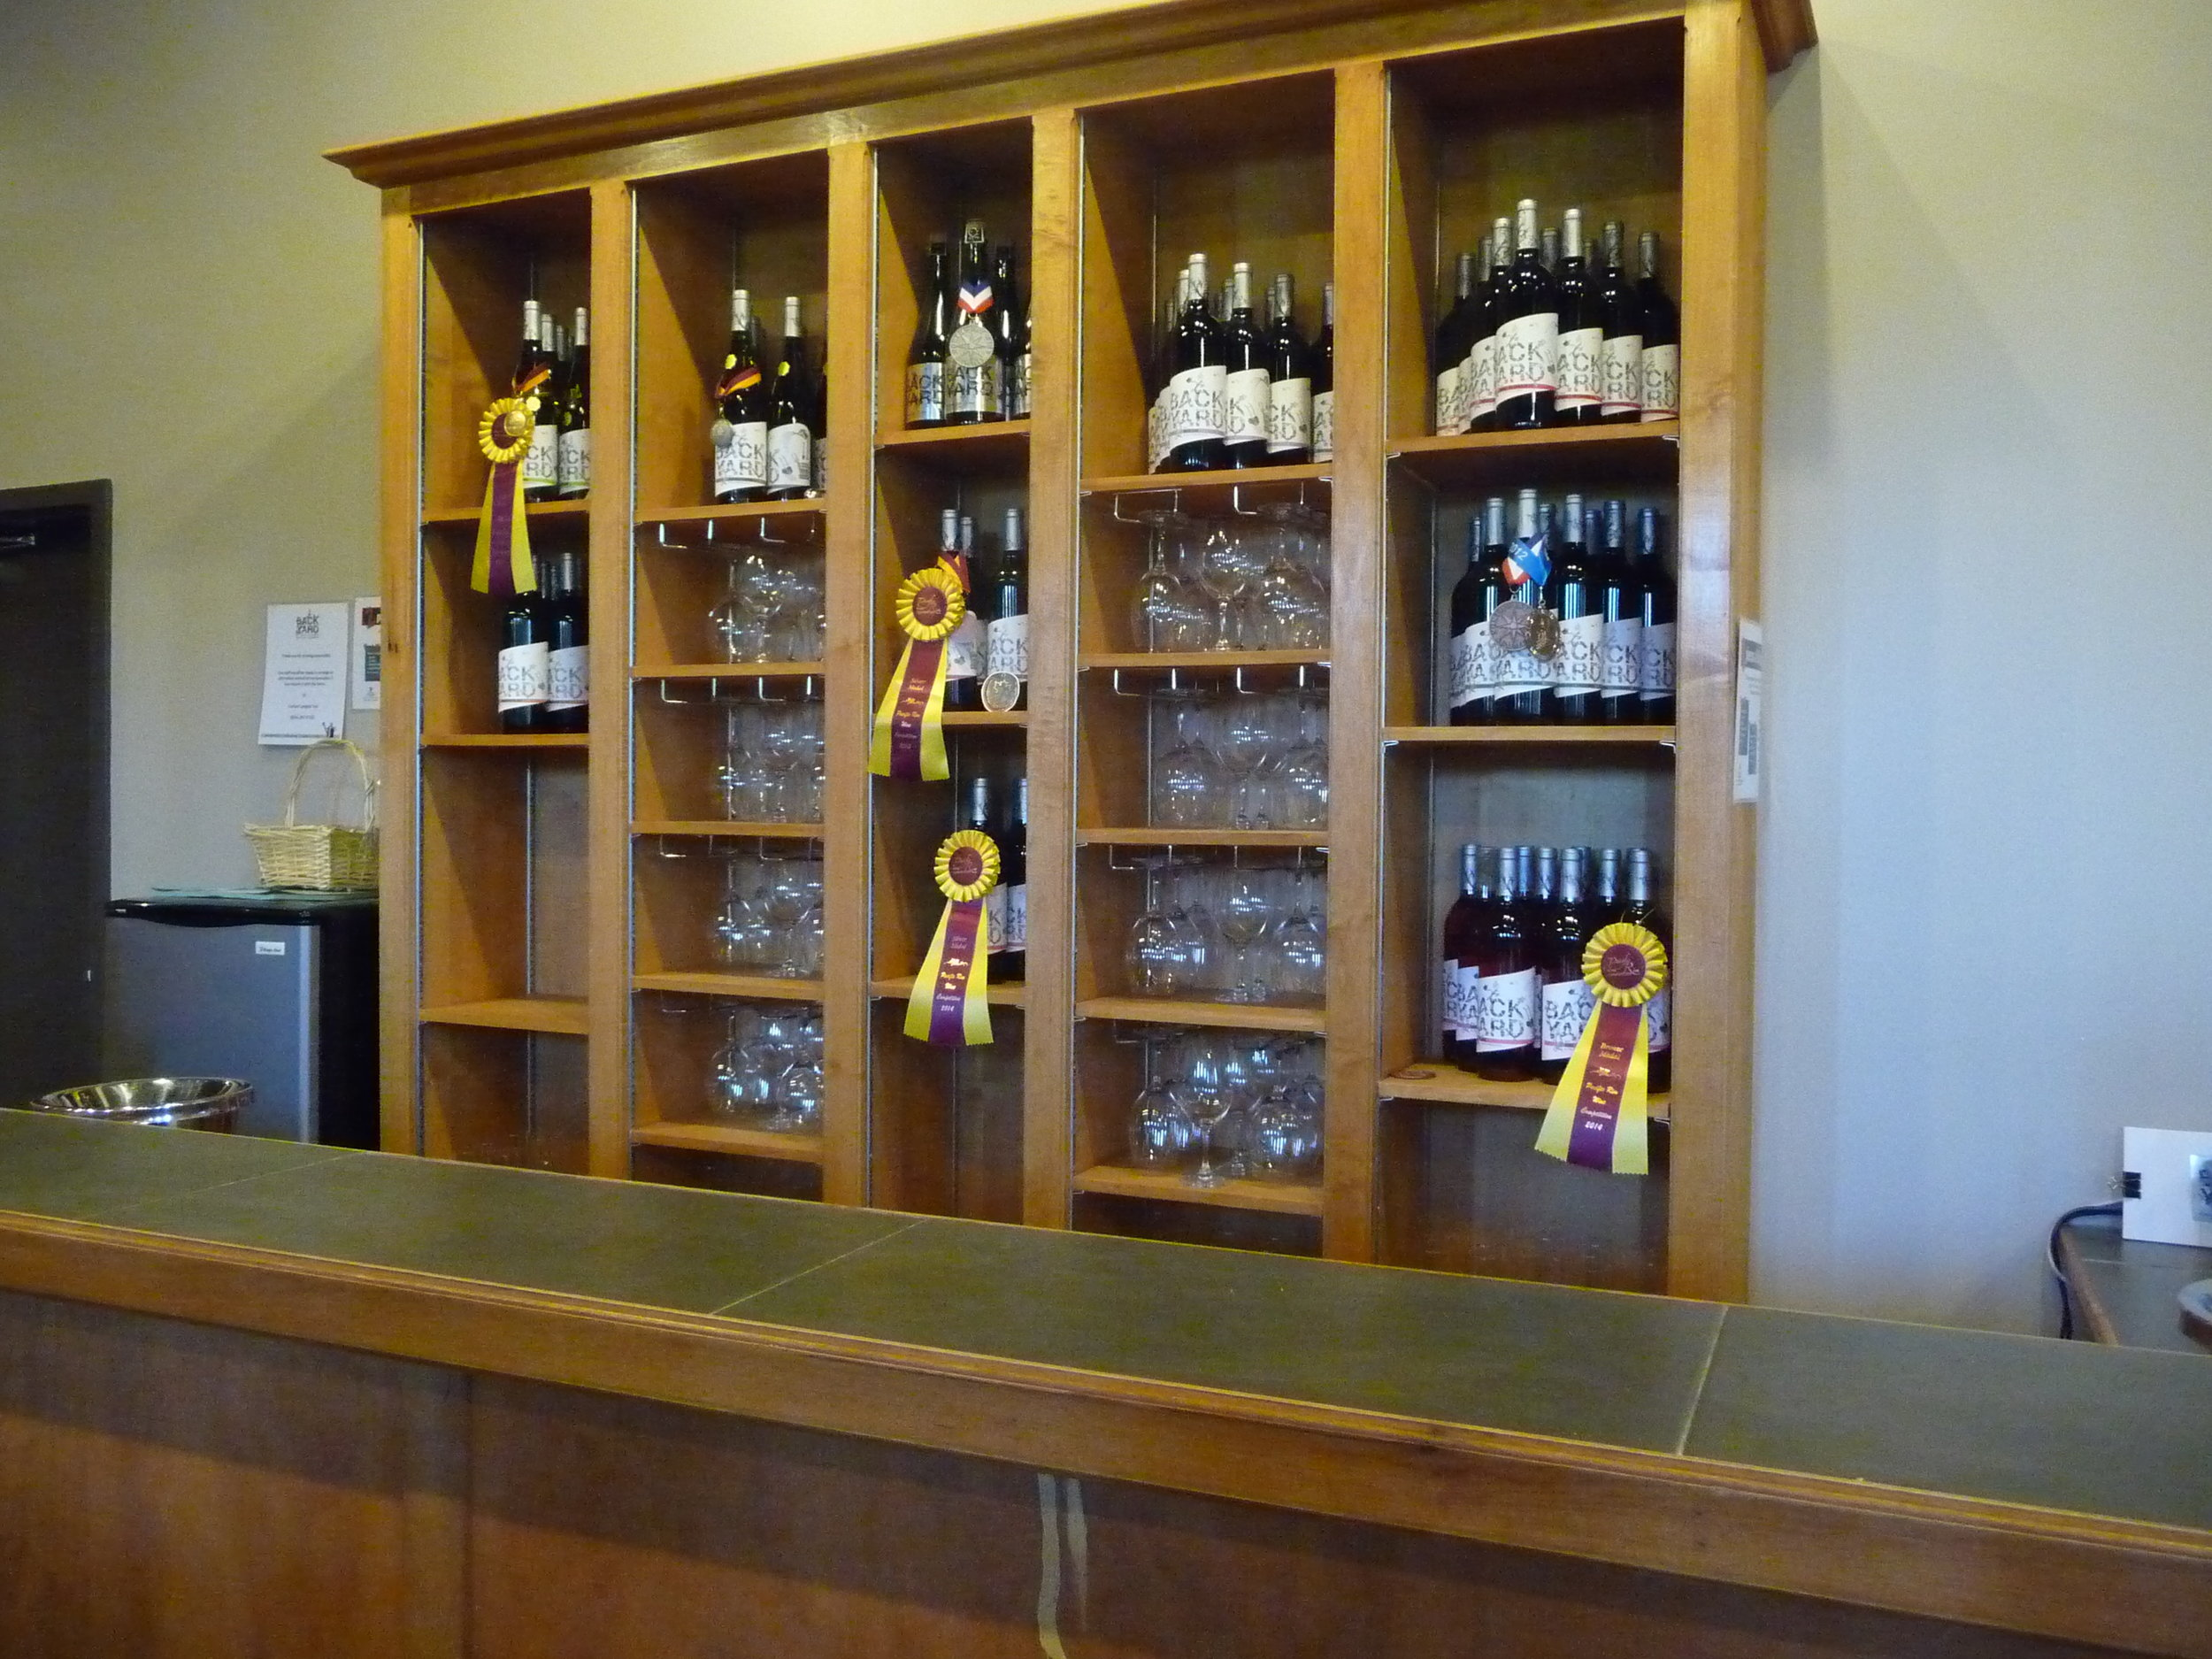 Tasting room of Backyard Vineyards. Several cheese & meat platter options are available as well as a couple paninis to pair with complimentary wine tastings.